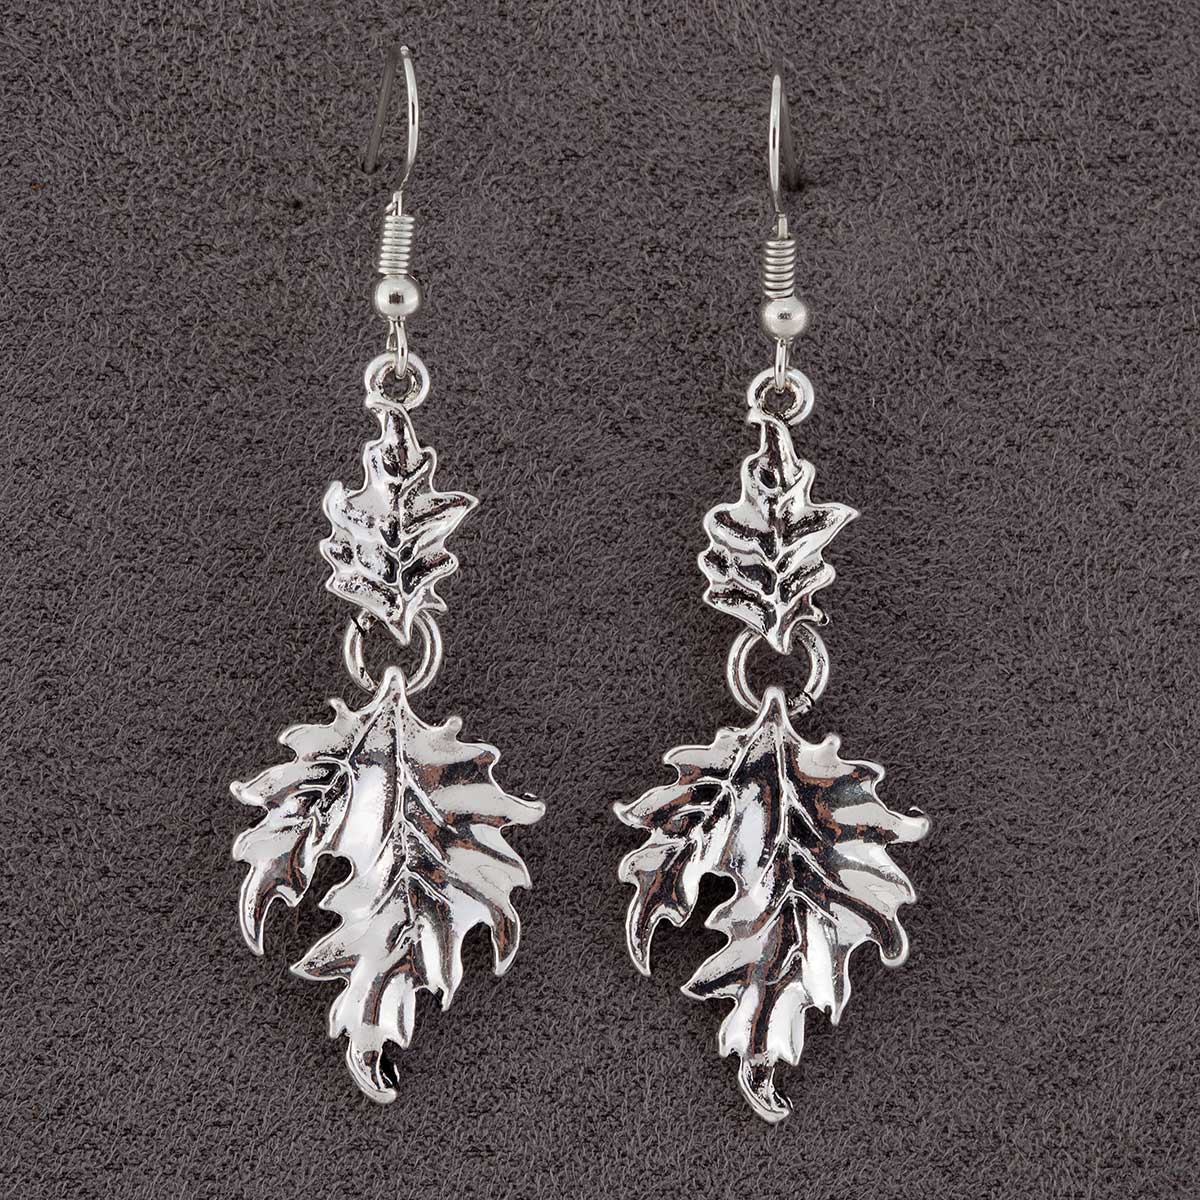 "Silver1.5x.75"" Acanthus Double Leaf on French Wire Earrings"